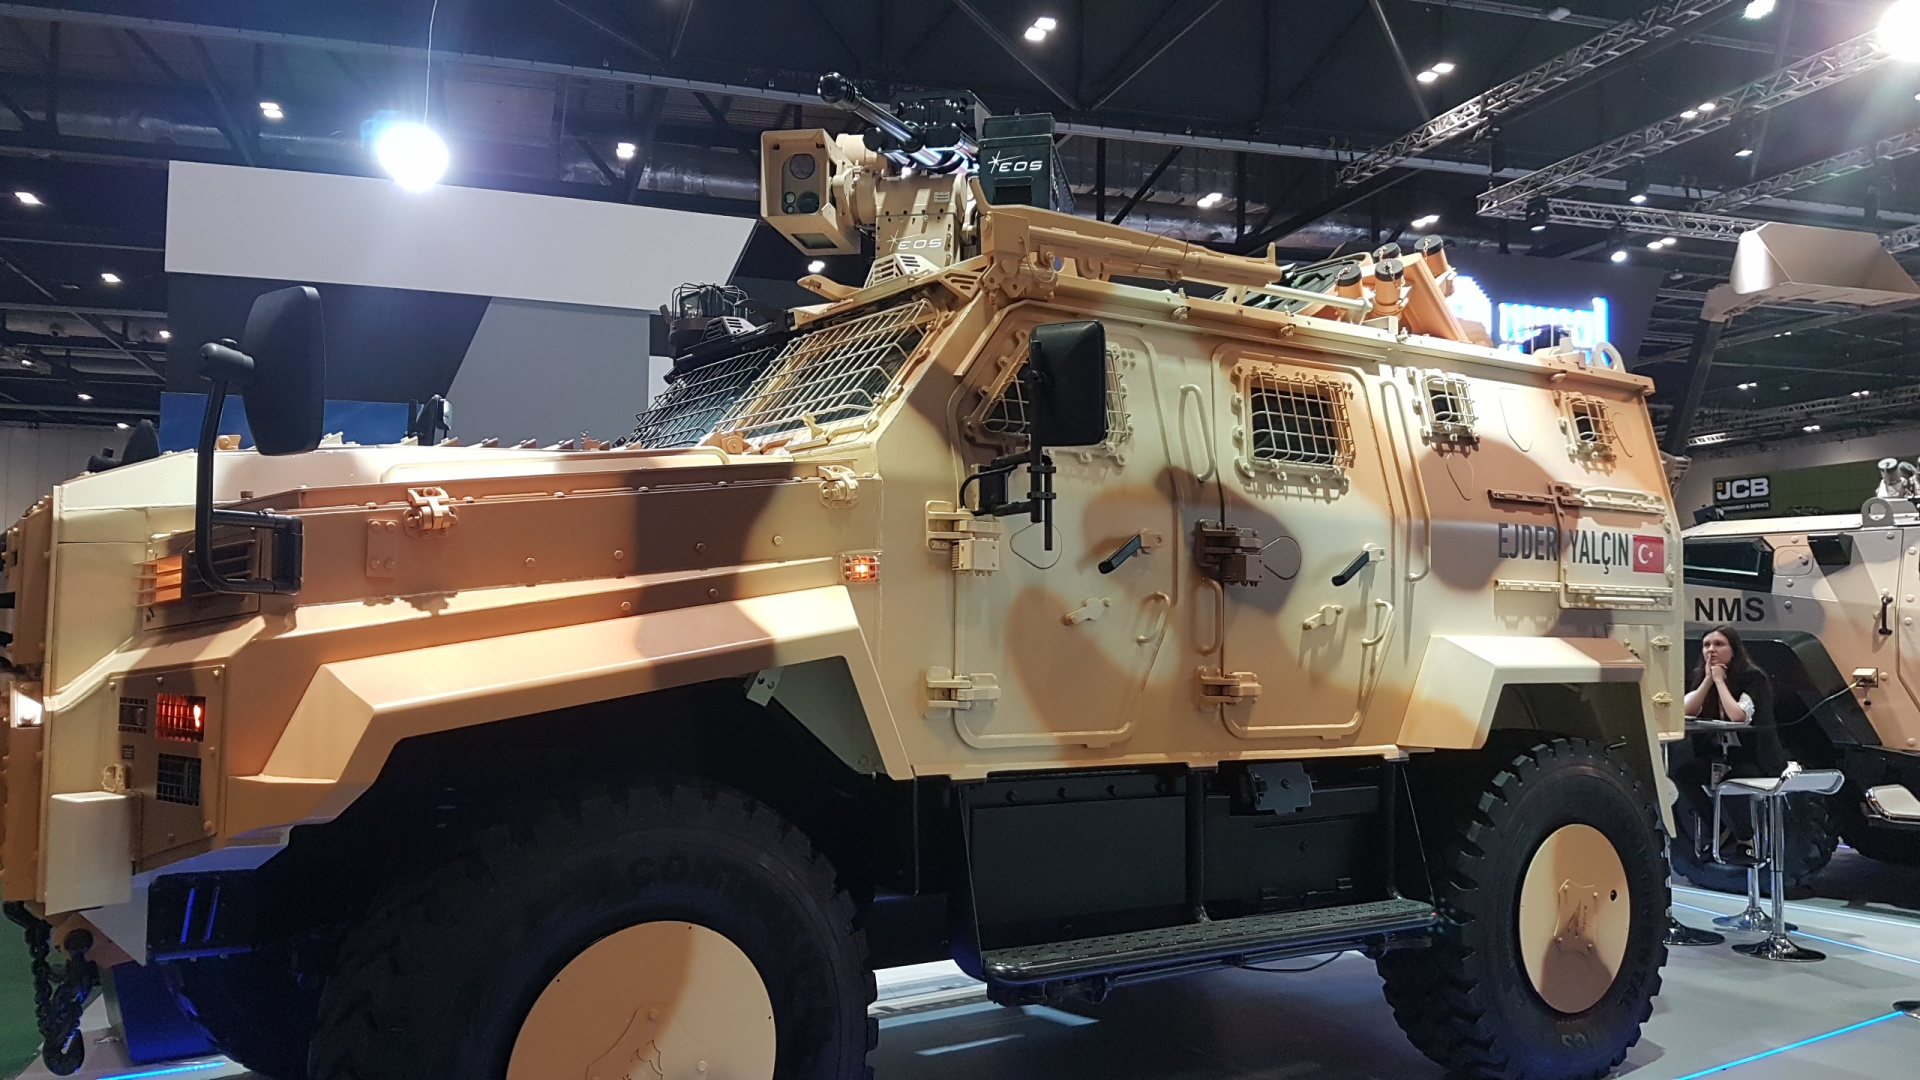 Turkish arms companies such as Nurol Makina had a major presence at DSEI 2019